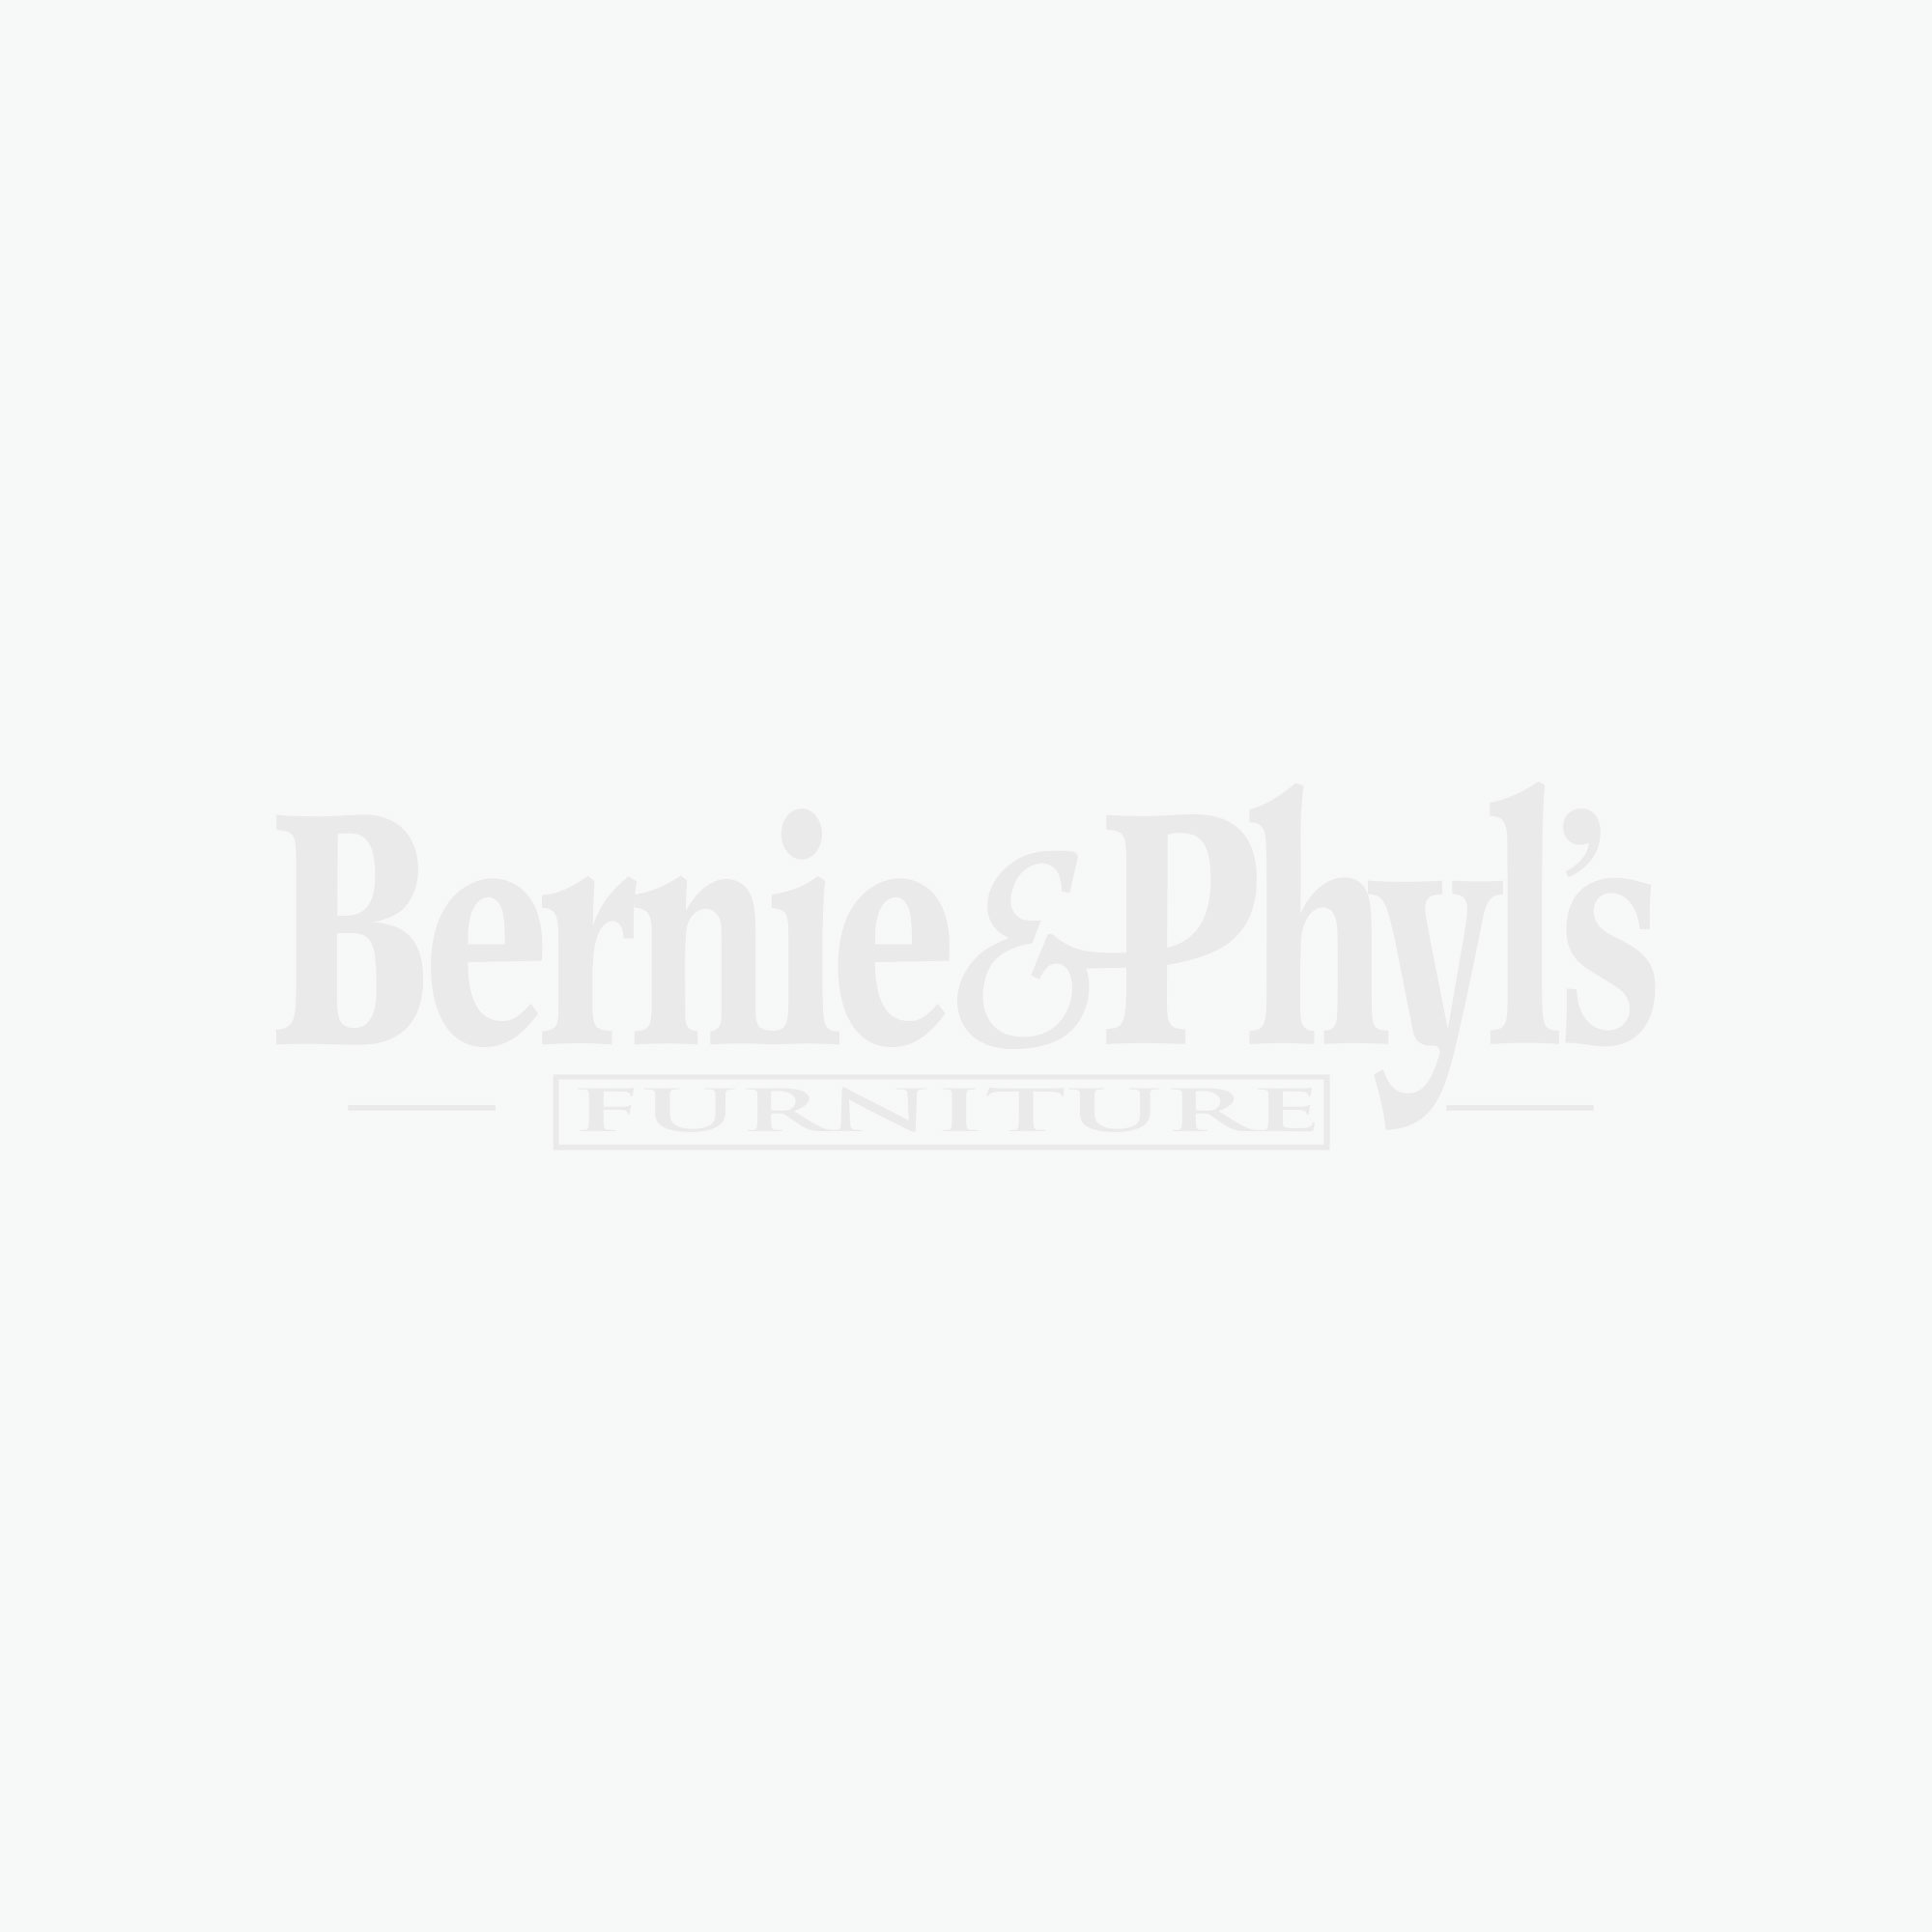 Berringer Dining Uph Side Chair Rustic Brown Set Of 2